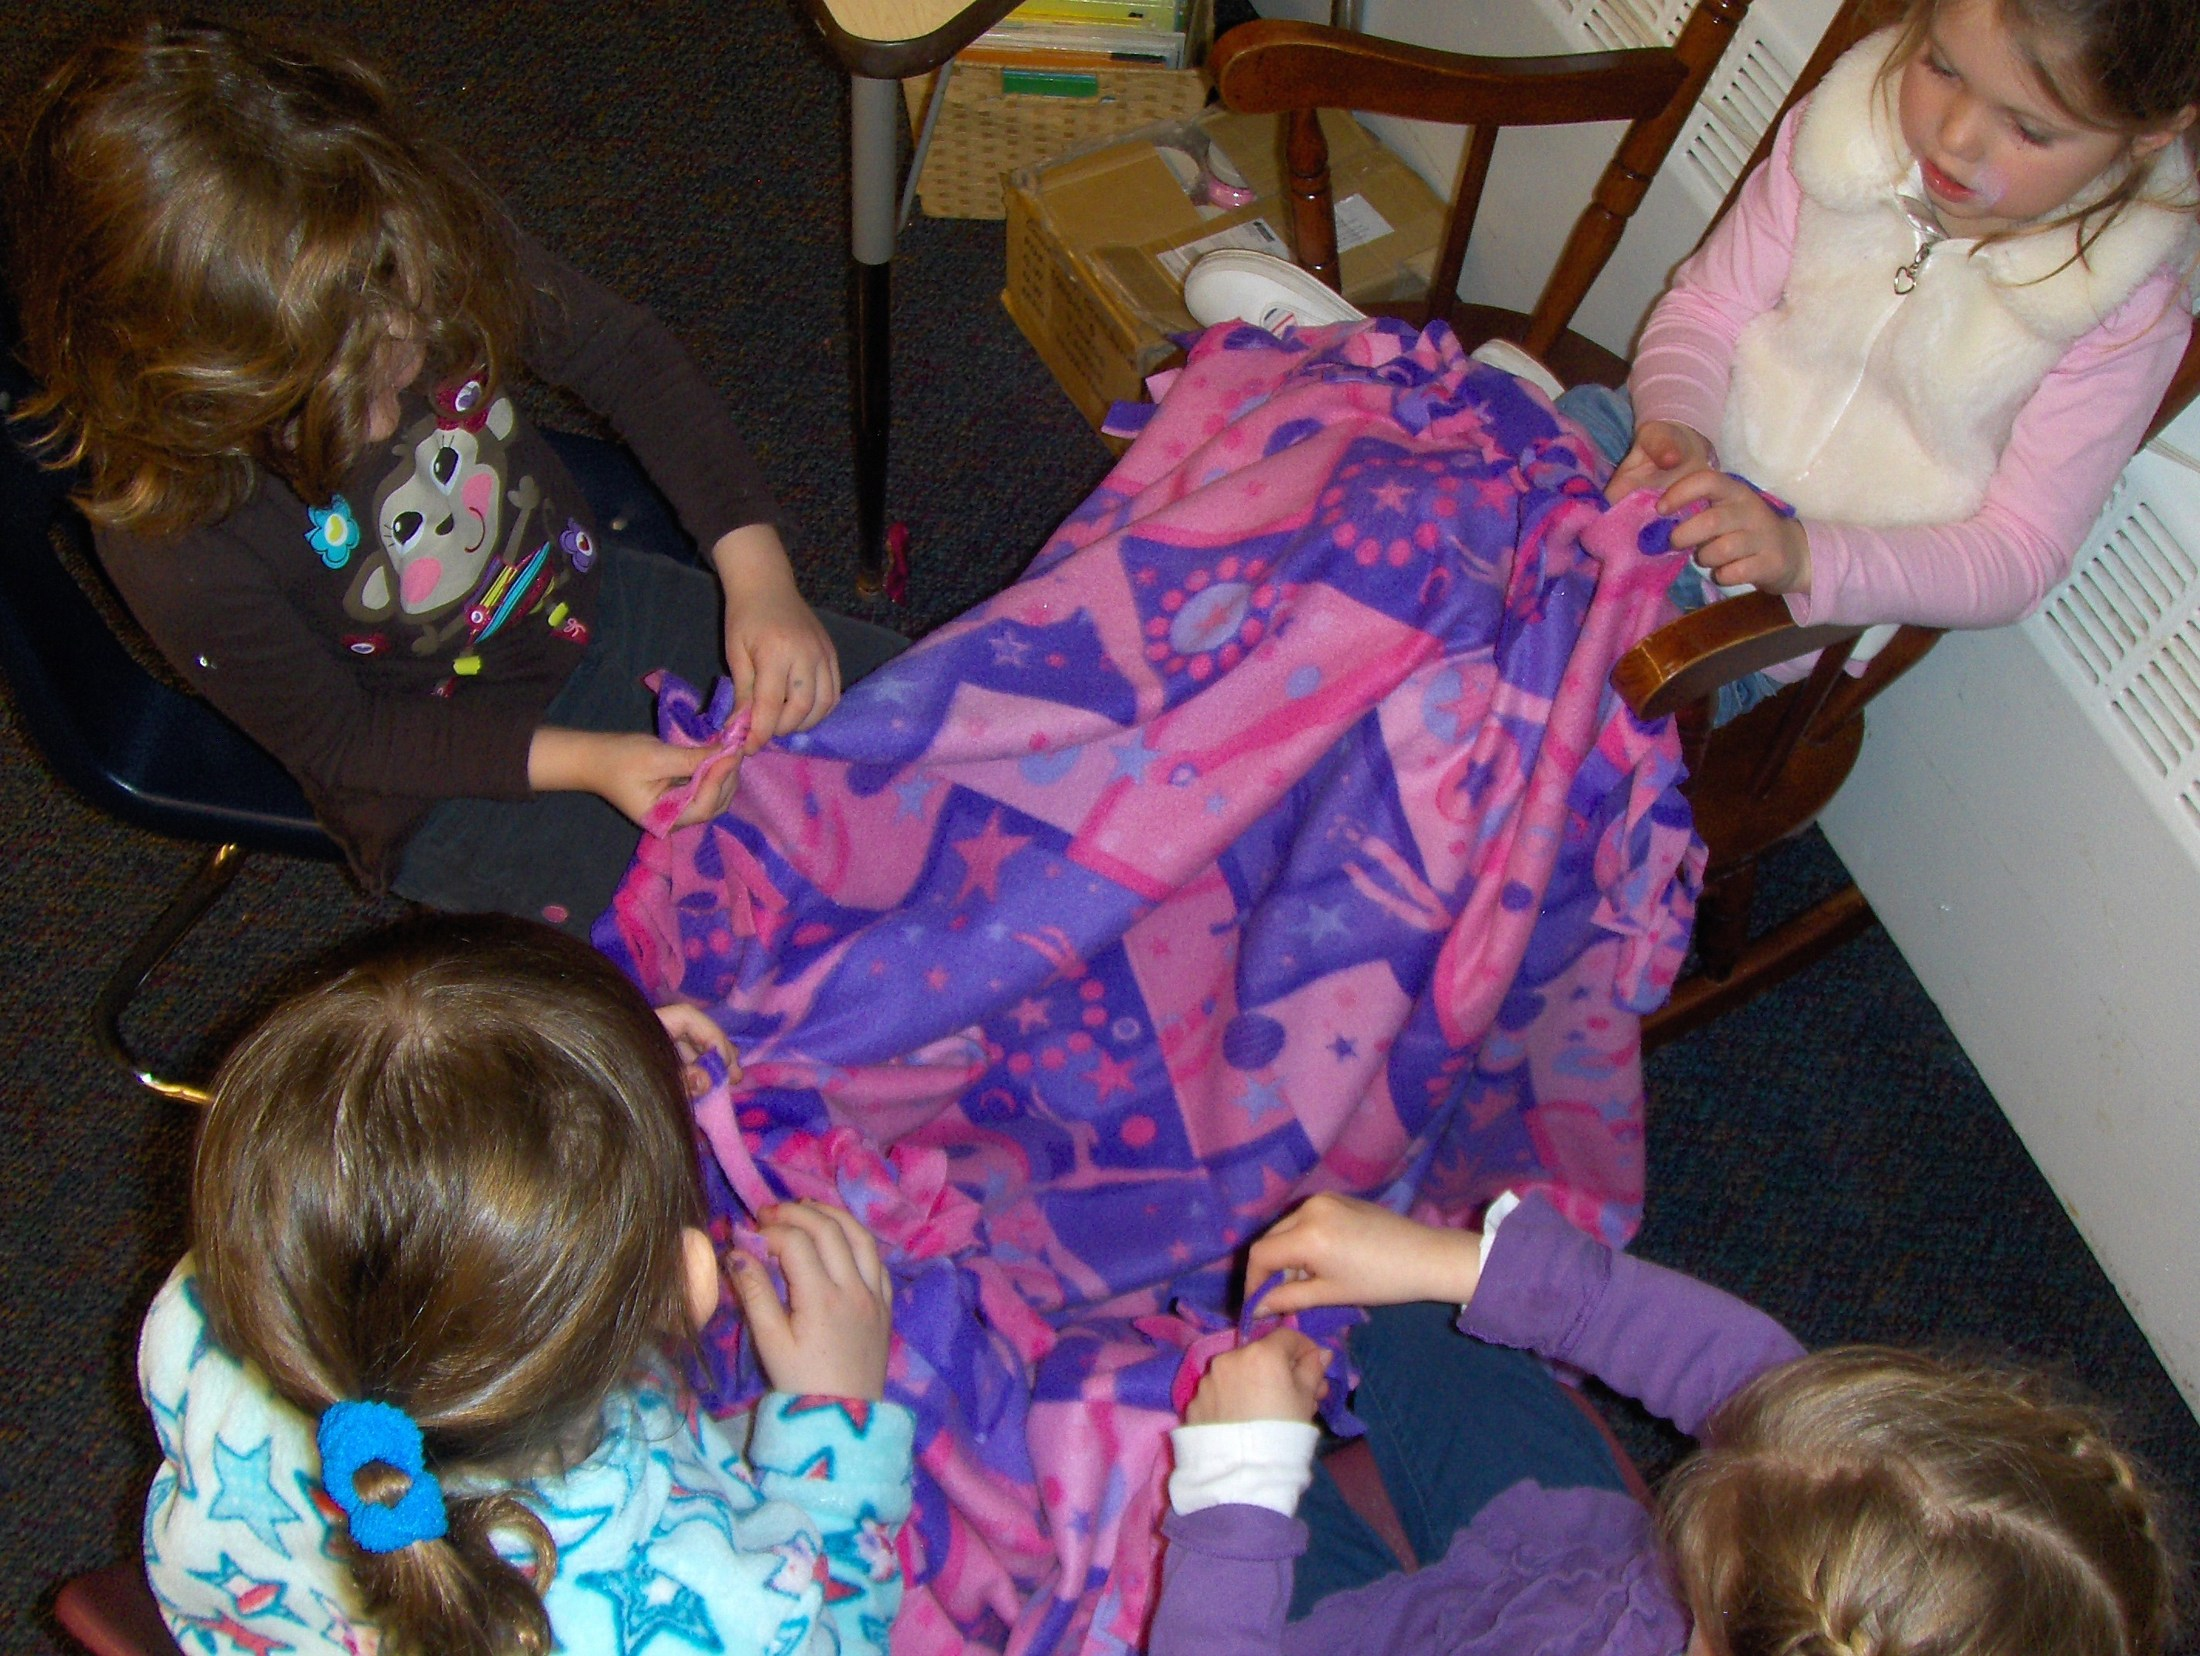 Girls making a blanket for Community Service Project.